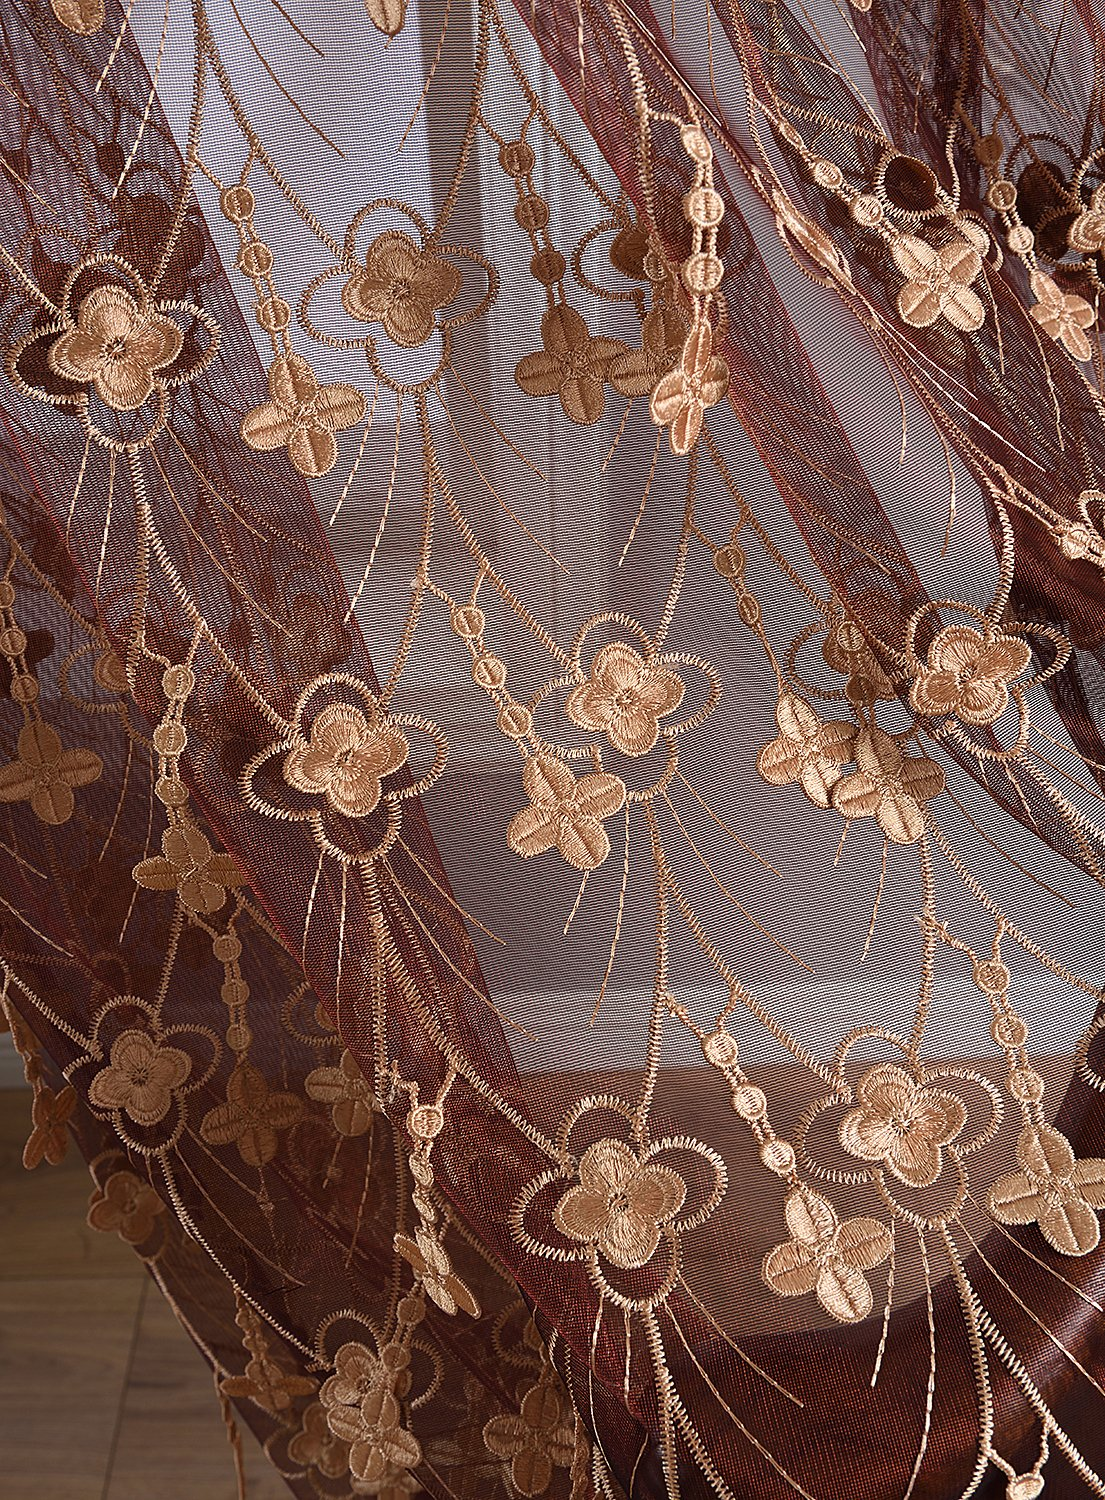 Aside Bside 4 Petals Floral Embroidered Sheer Curtains with Draping Embroidery Decorations Rod Pocket Top Brilliant Design (1 Panel, W 52 x L 104 inch, Red 6) -1281638521048506C1PGC by Aside Bside (Image #2)